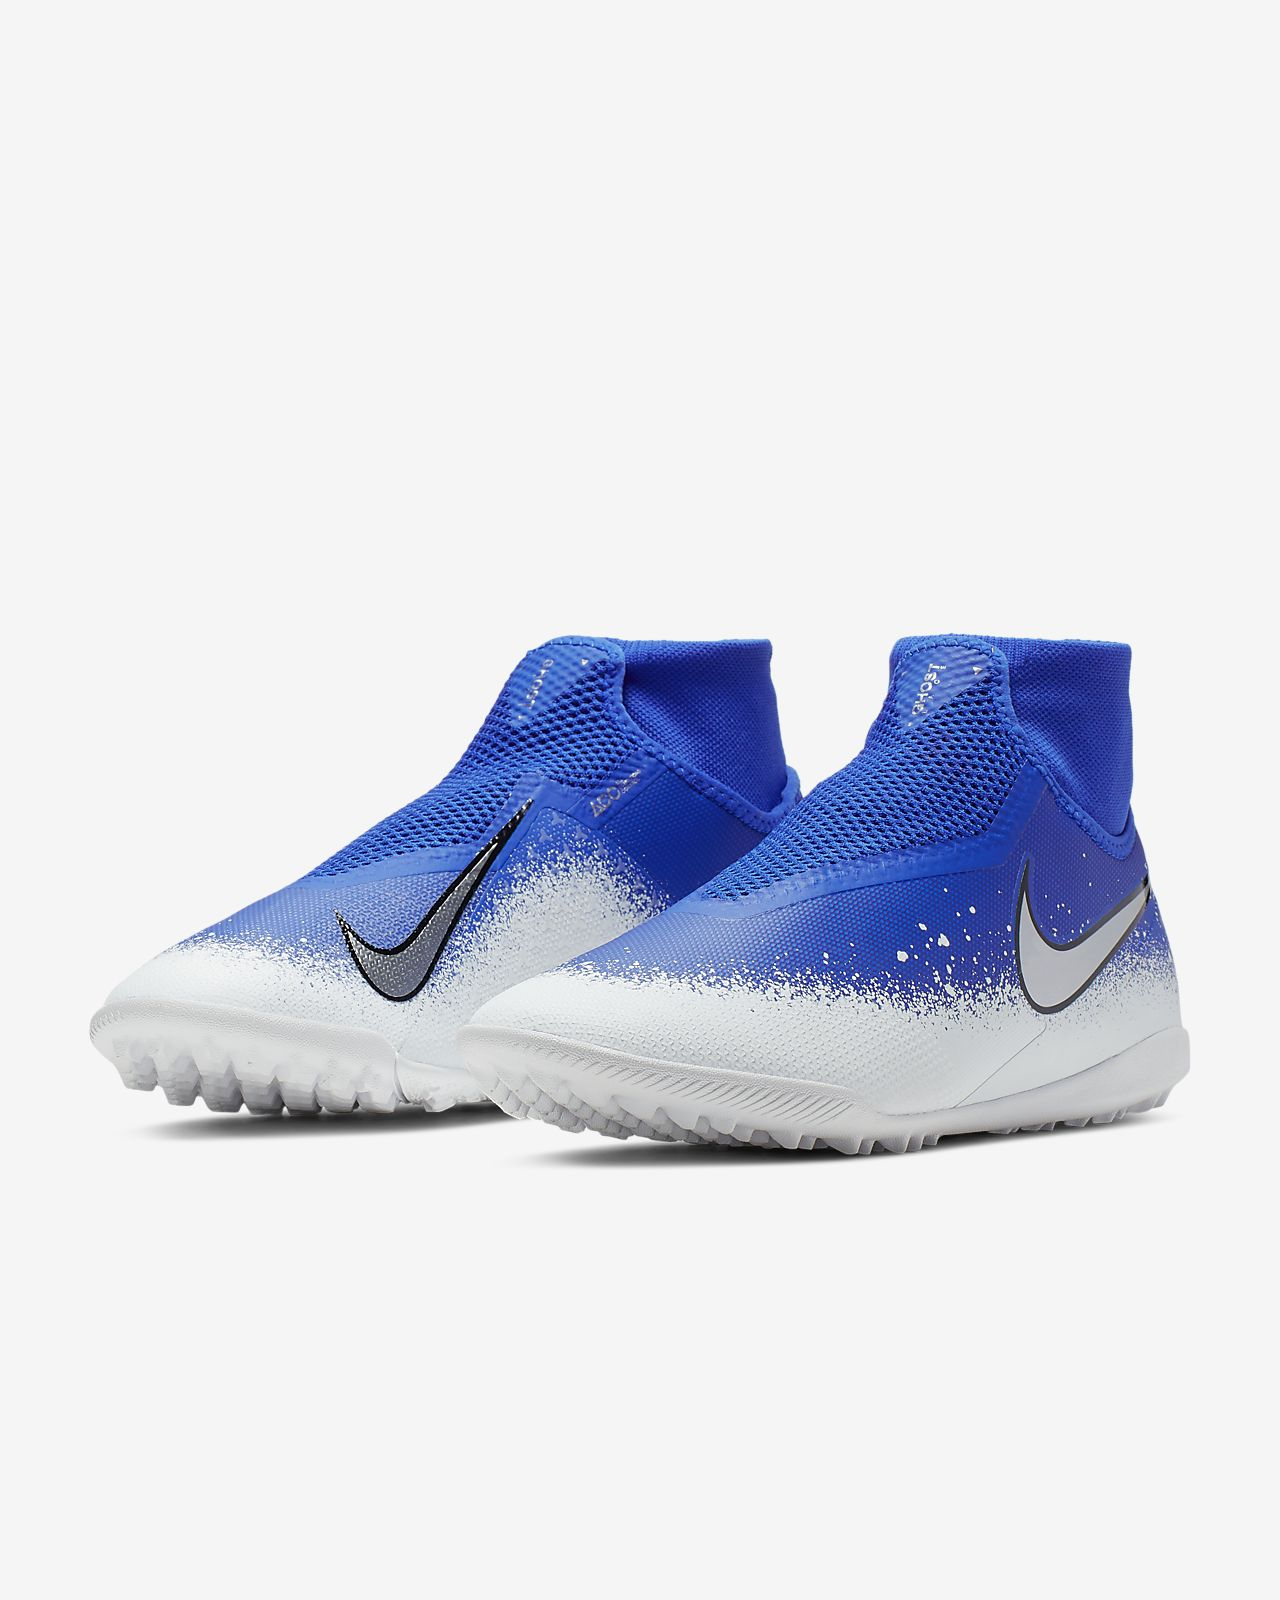 a894a2518 Nike React Phantom Vision Pro Dynamic Fit TF Turf Soccer Shoe. Nike.com